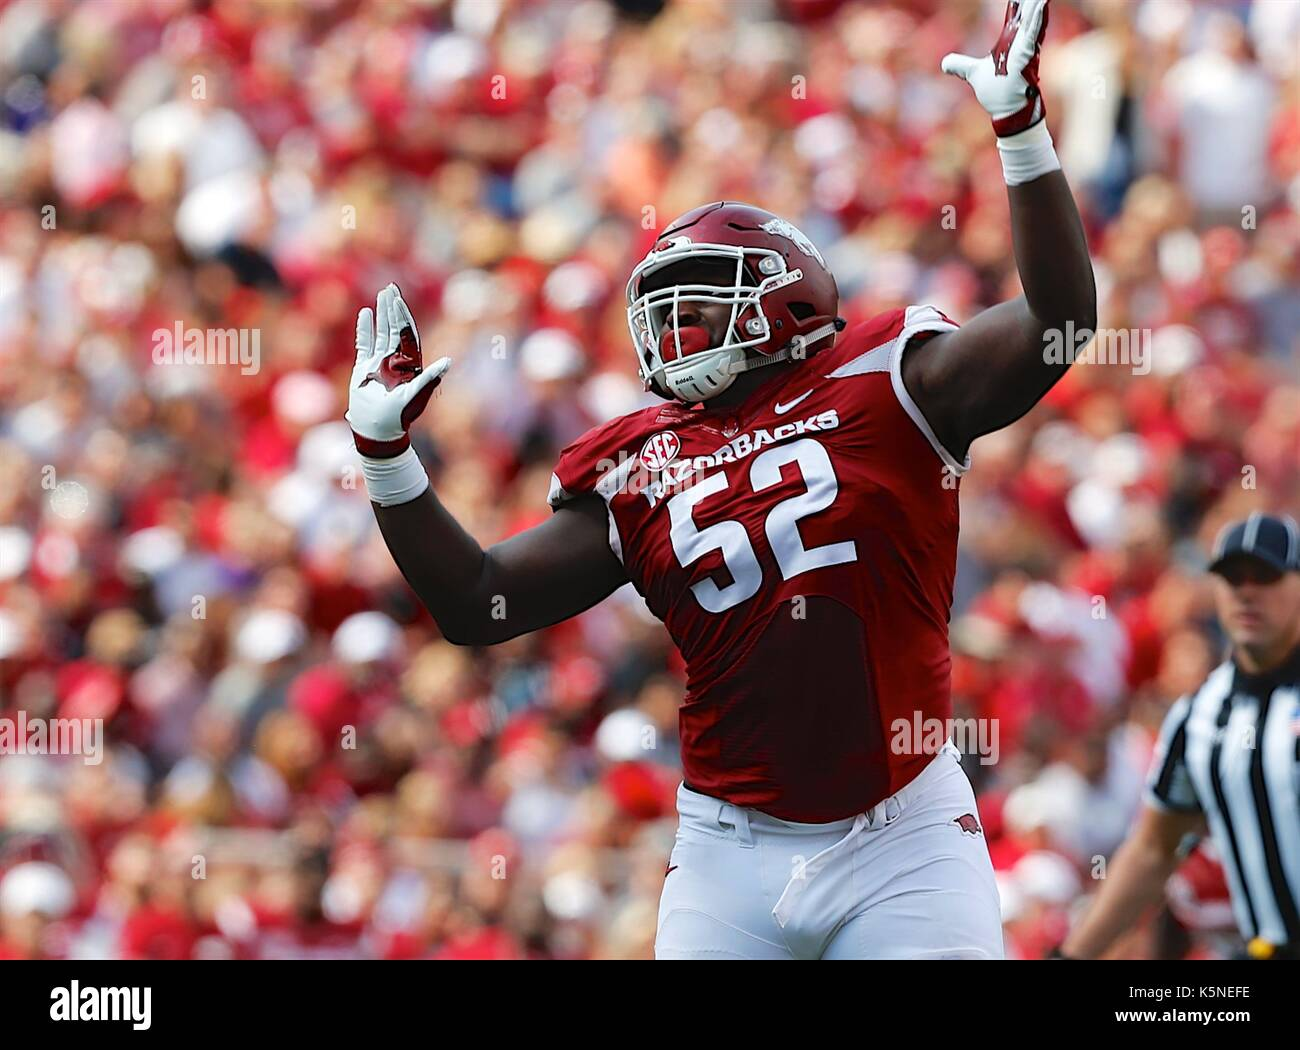 Sep 9, 2017: Arkansas defensive lineman T.J. Smith #52 comes up the field. The TCU Horned Frogs defeated the Arkansas Razorbacks 28-7 at Donald W. Reynolds Stadium in Fayetteville, AR, Richey Miller/CSM - Stock Image